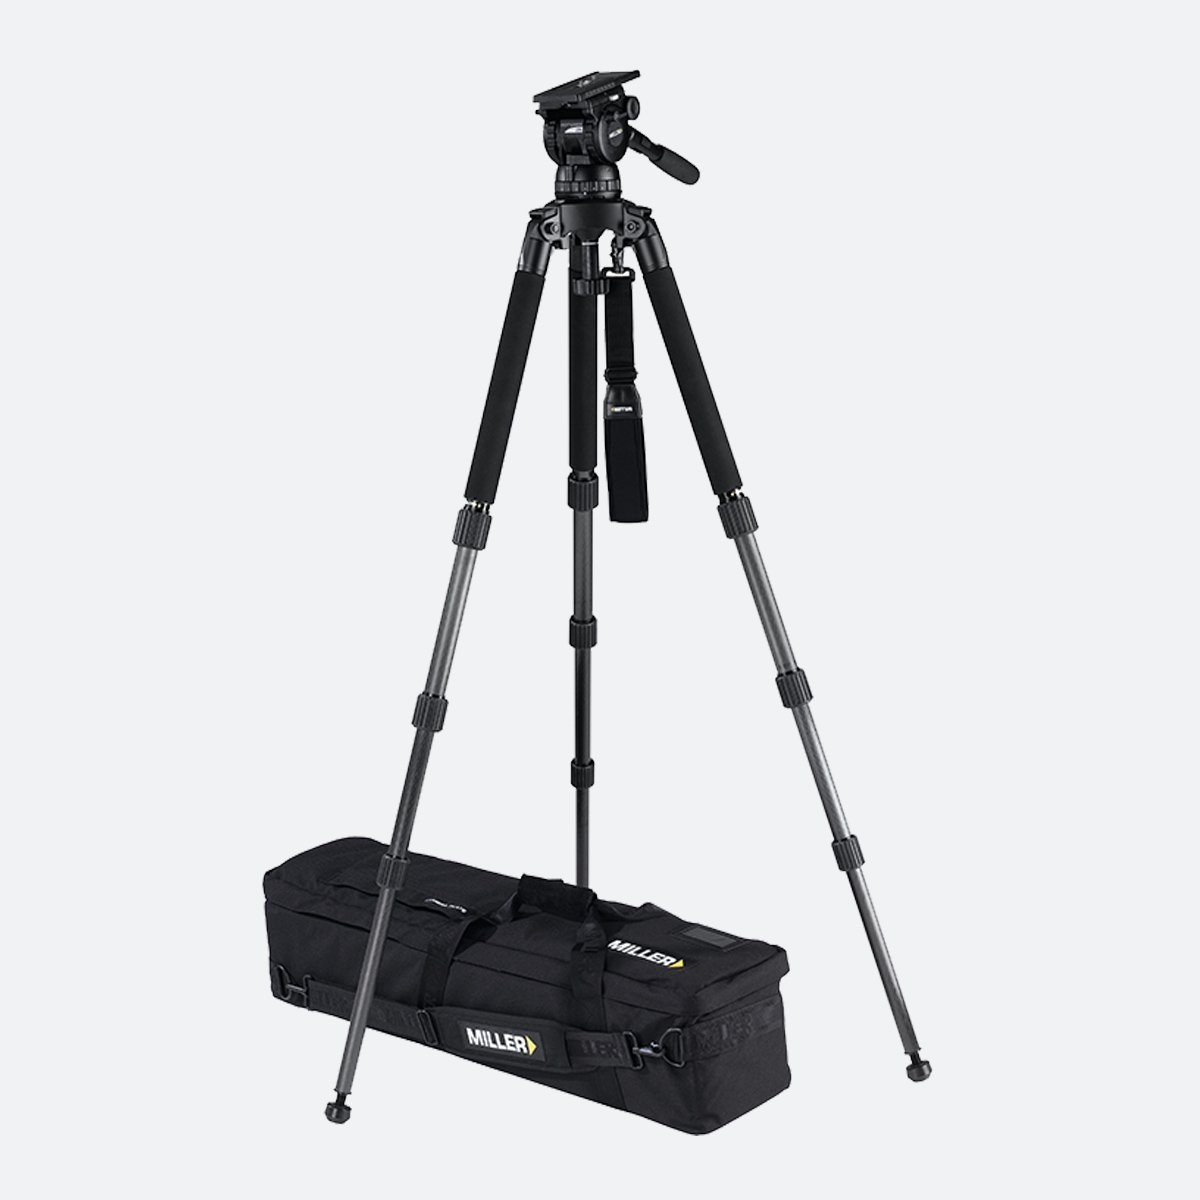 Miller 1857 Compass 25 Solo 3-Stage CF Tripod System